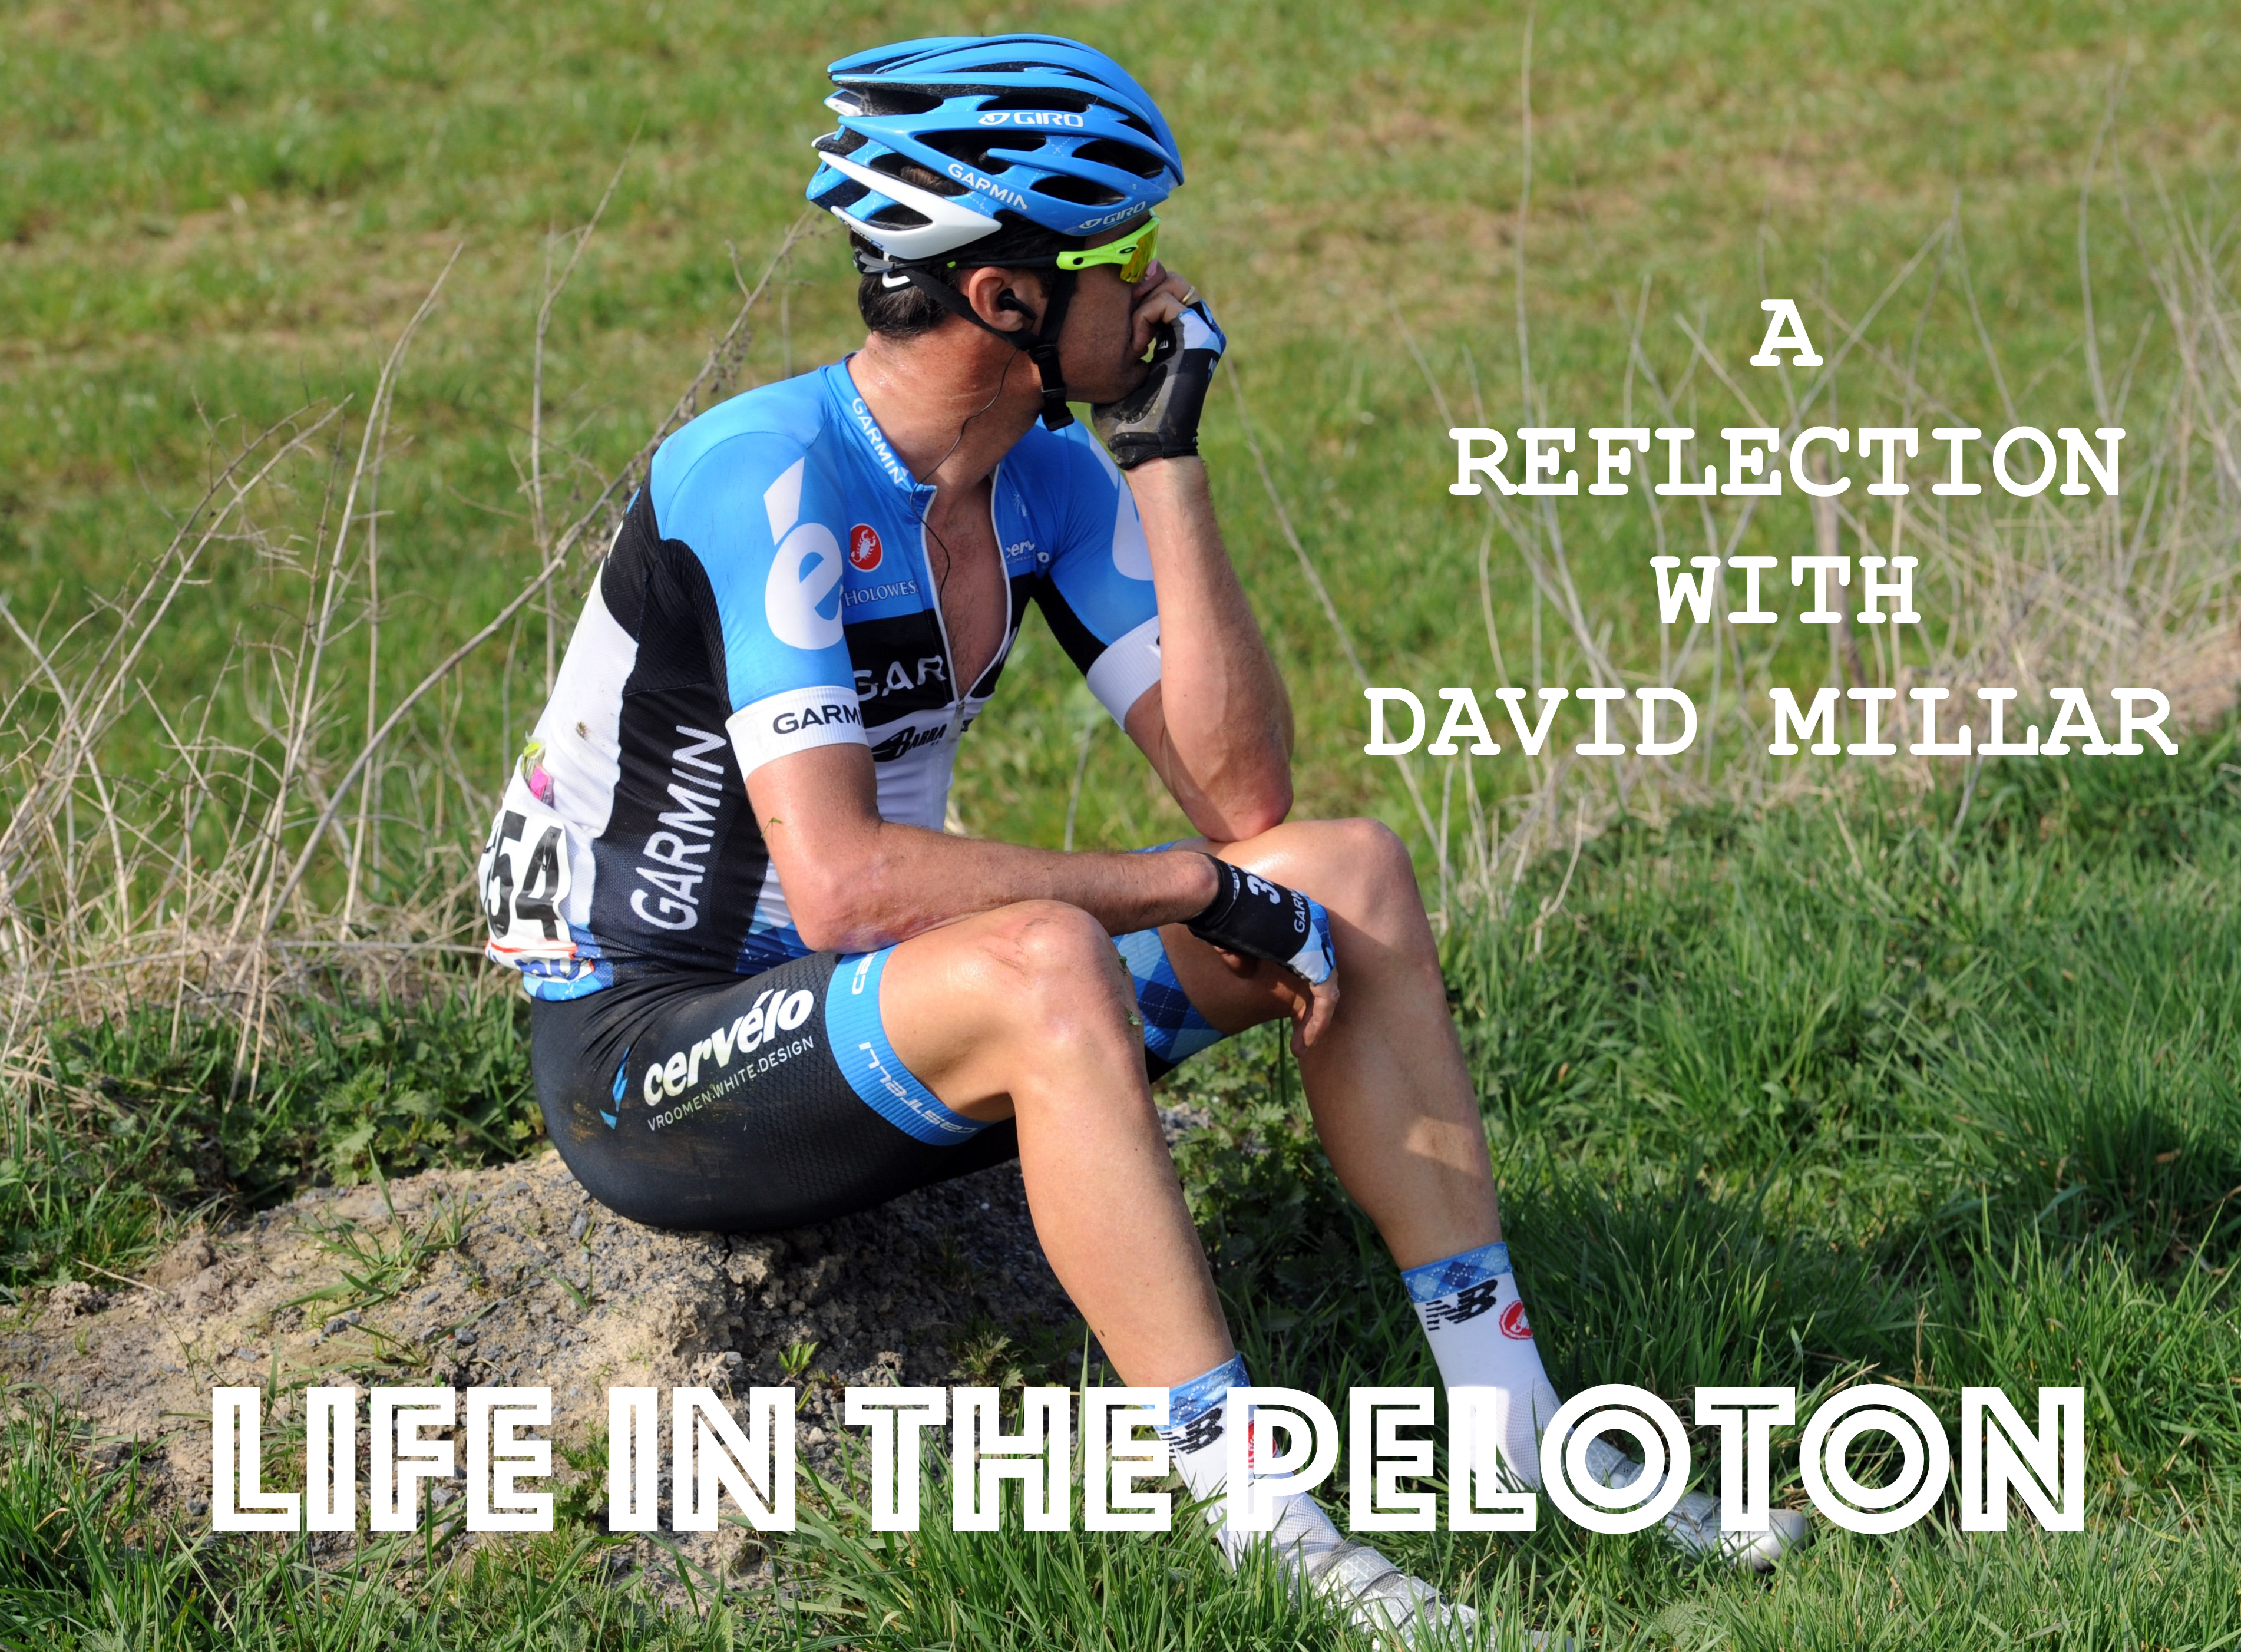 A Reflection with David Millar